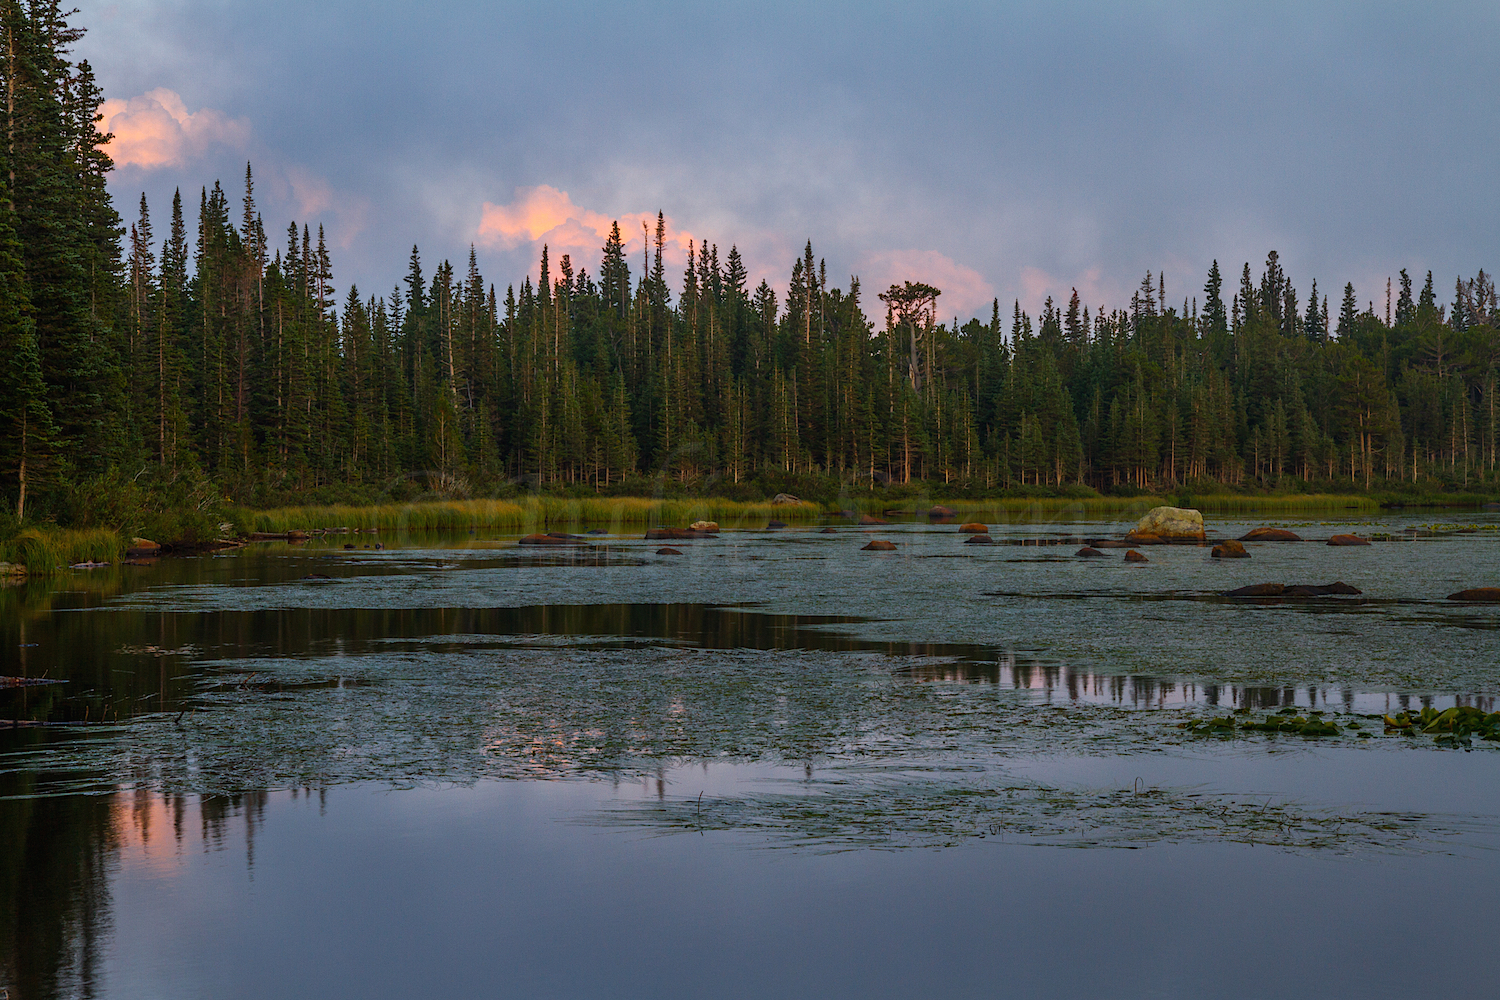 Redrock Lake Sunset, Image #4189